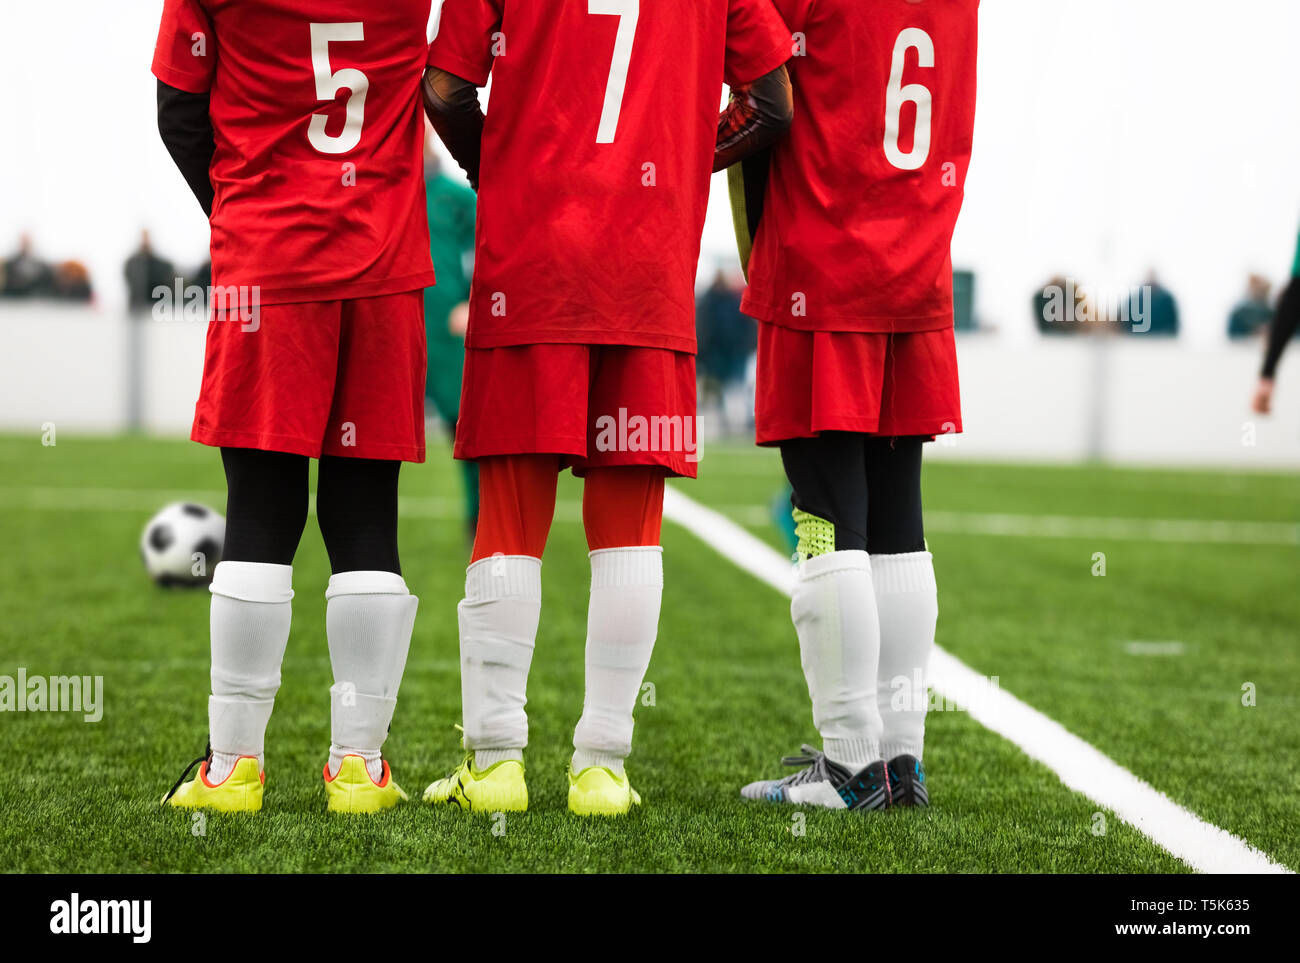 Junior Soccer Players Standing in a Wall. Free Kick Situation During Football Match. Players Wearing Red Soccer Jersey Shirts with Numbers on Back. So - Stock Image